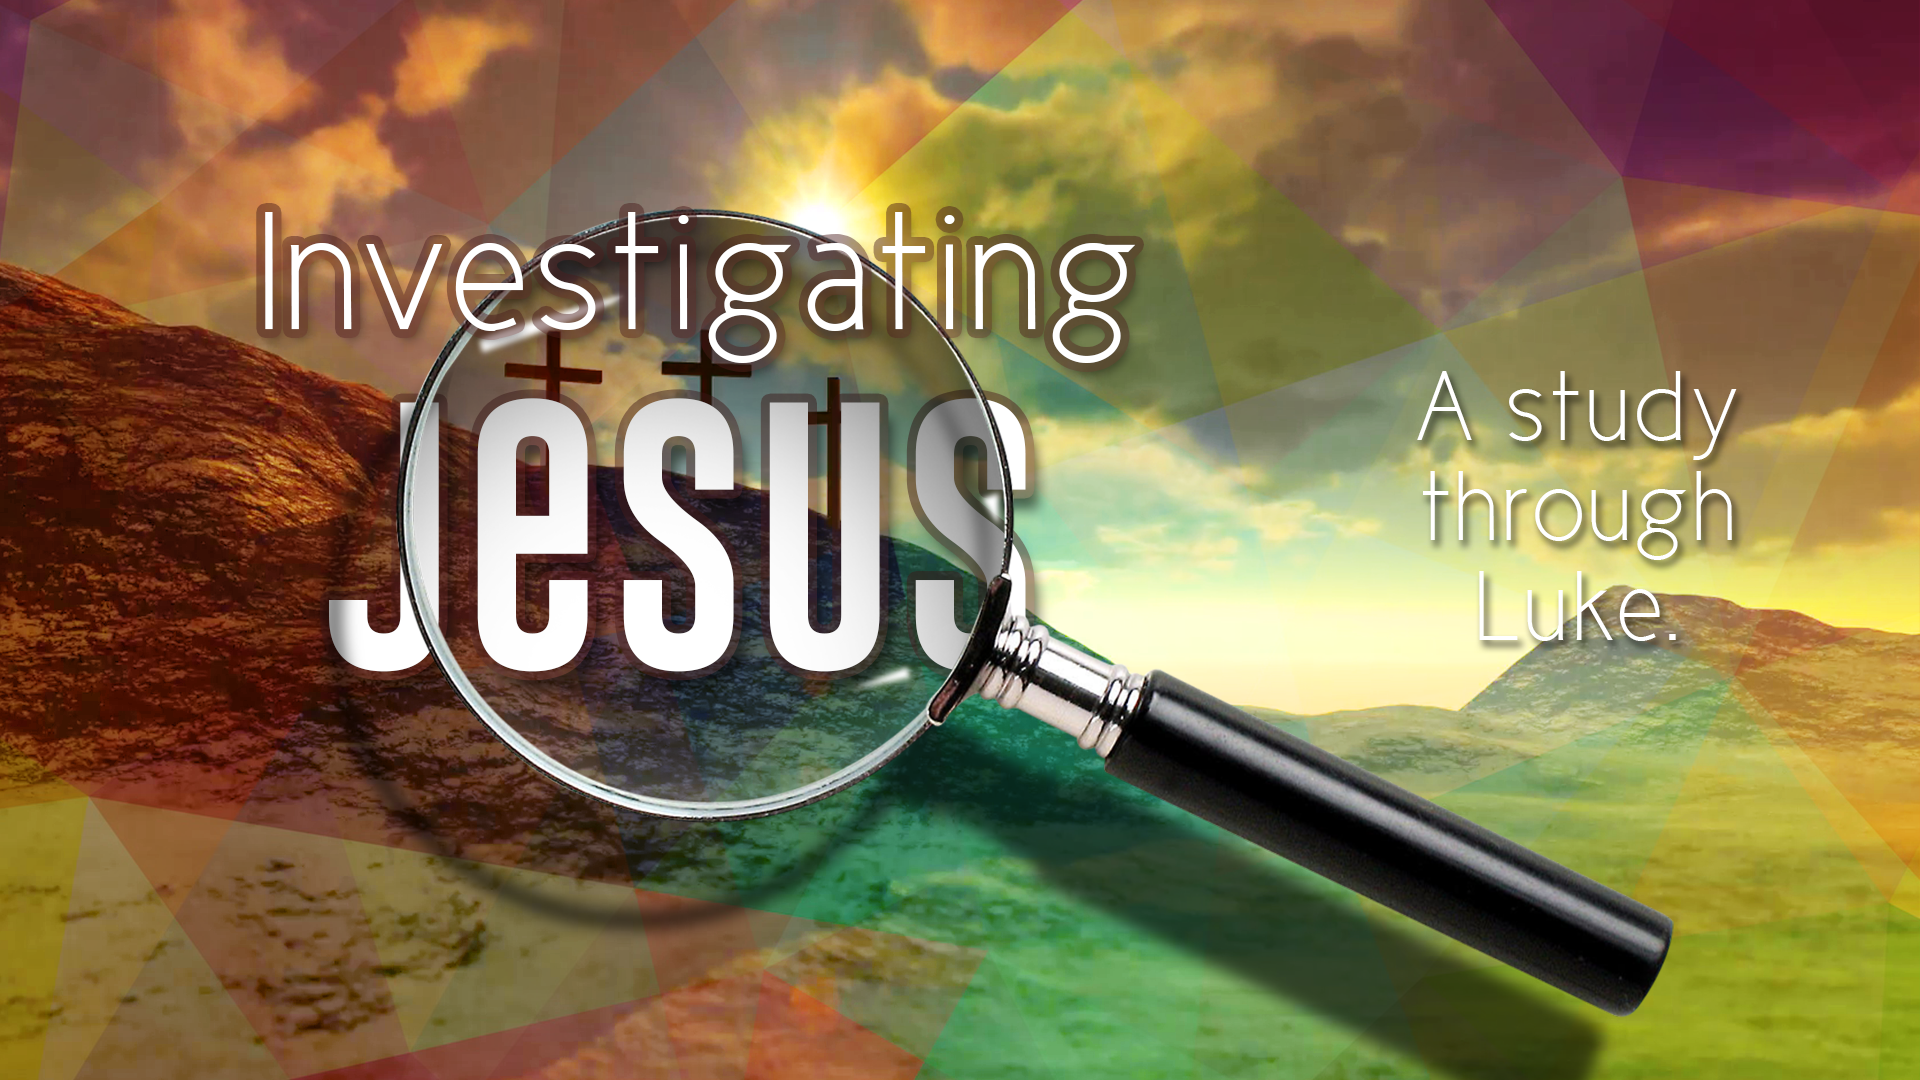 Investigating Jesus, Vol. 4, Part 2: The Compassion of Jesus